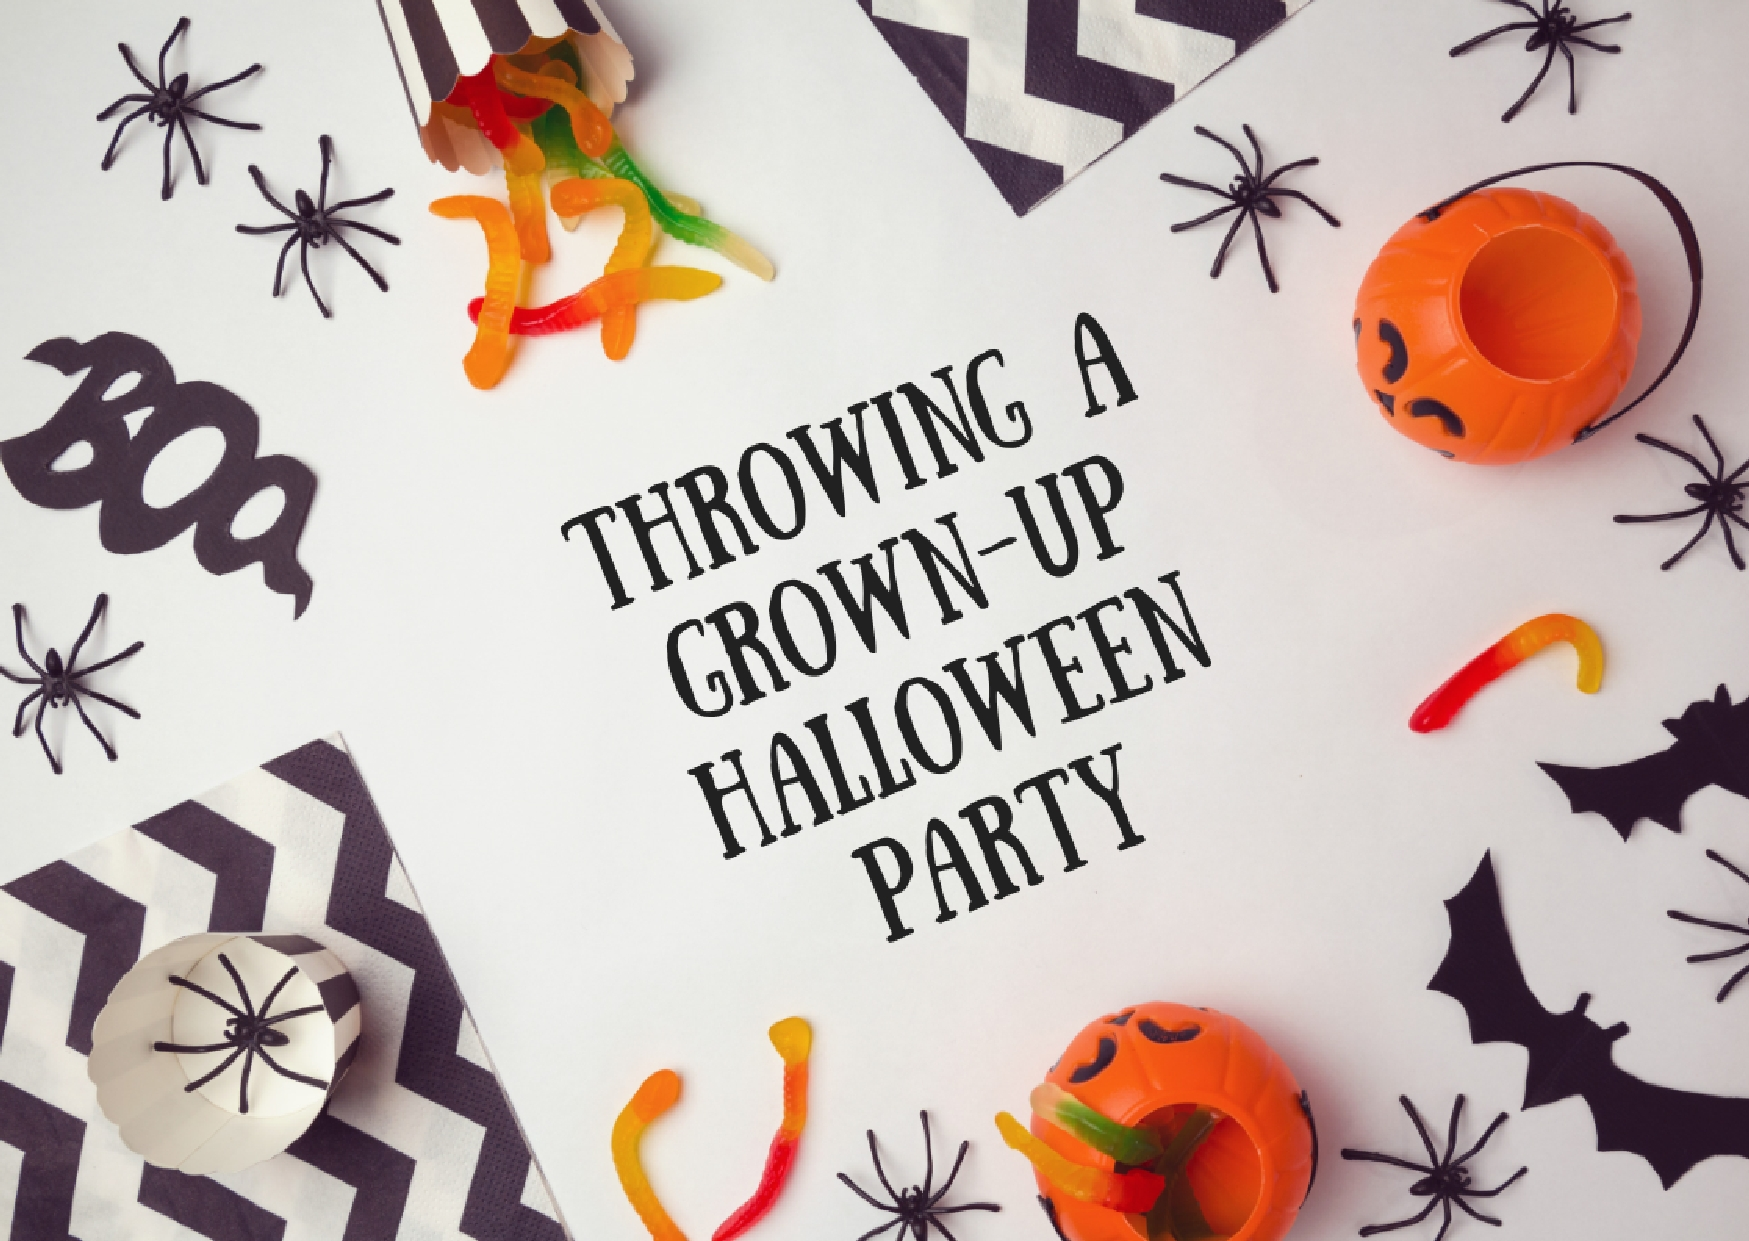 Grown up halloween party